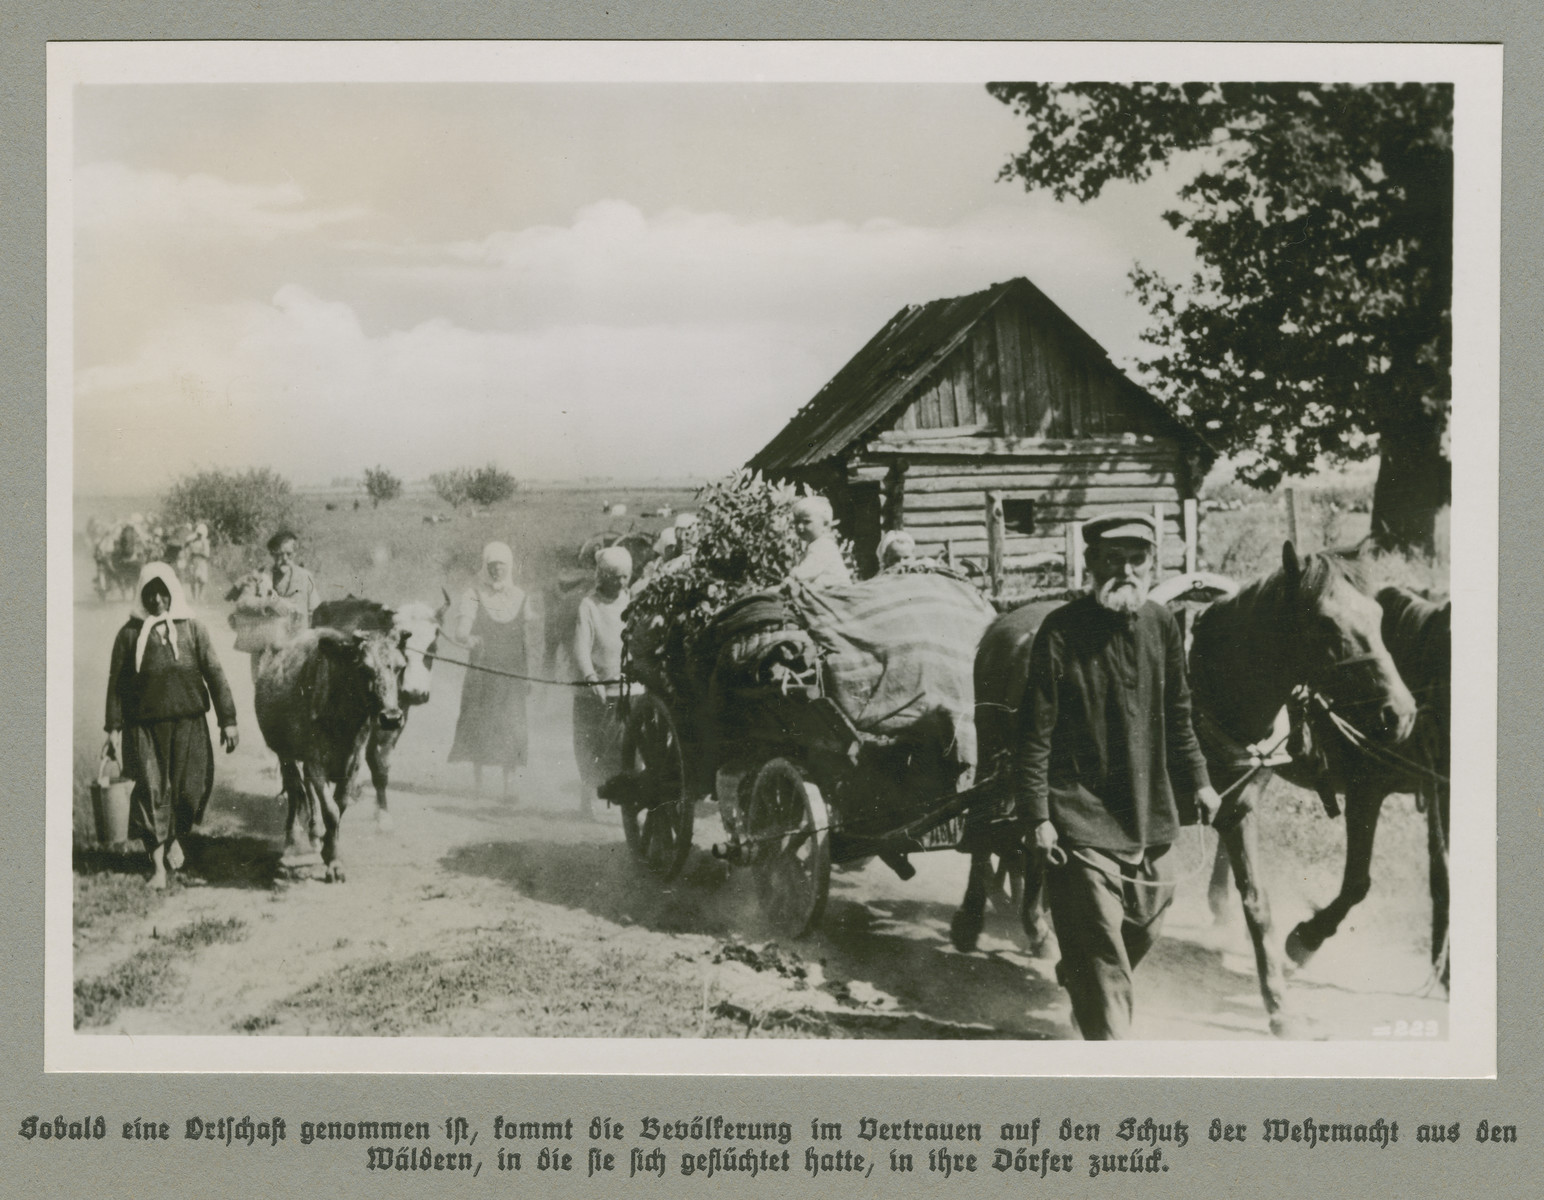 Peasants with wagons and livestock proceed down a dirt road.  The original caption reads: As soon as an area has been taken, the entire population returns to their villages from the forests to which they have fled, confident in the protection of the Wehrmacht.